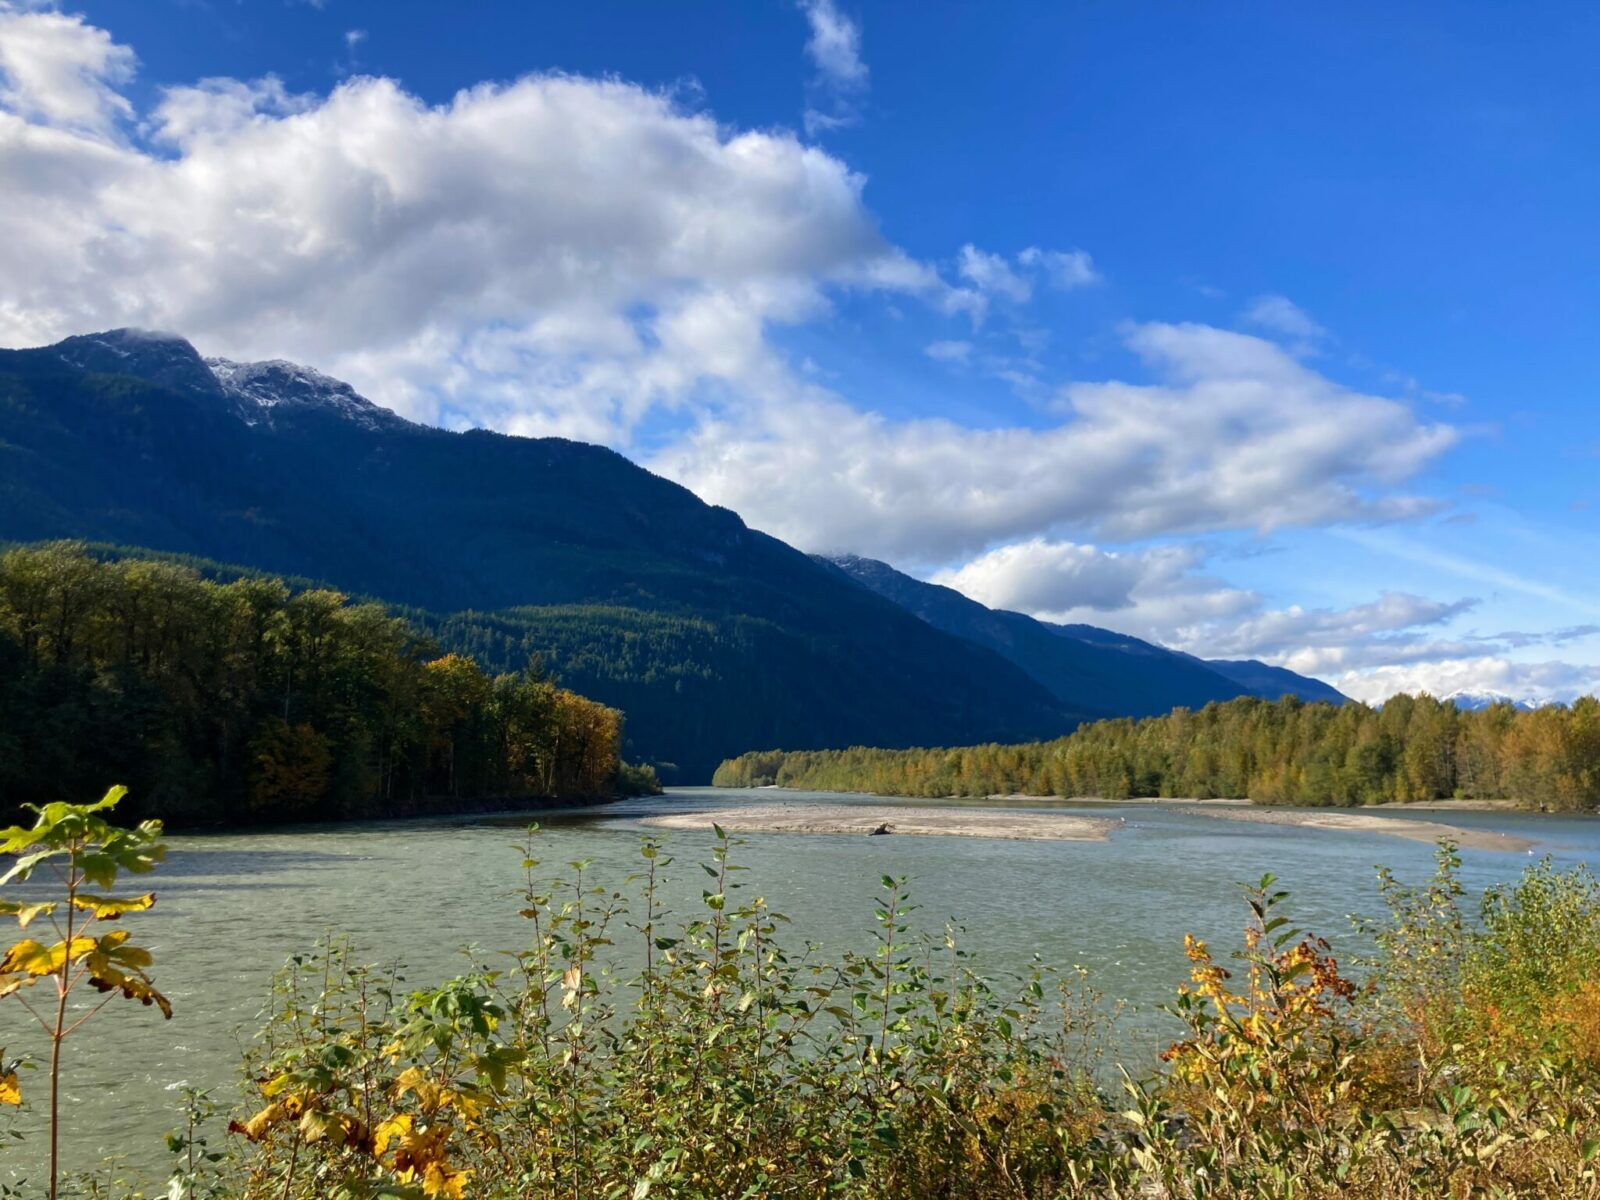 High forested mountains in the background with forest surrounding the sides of a river with a couple of gravel bars in the middle